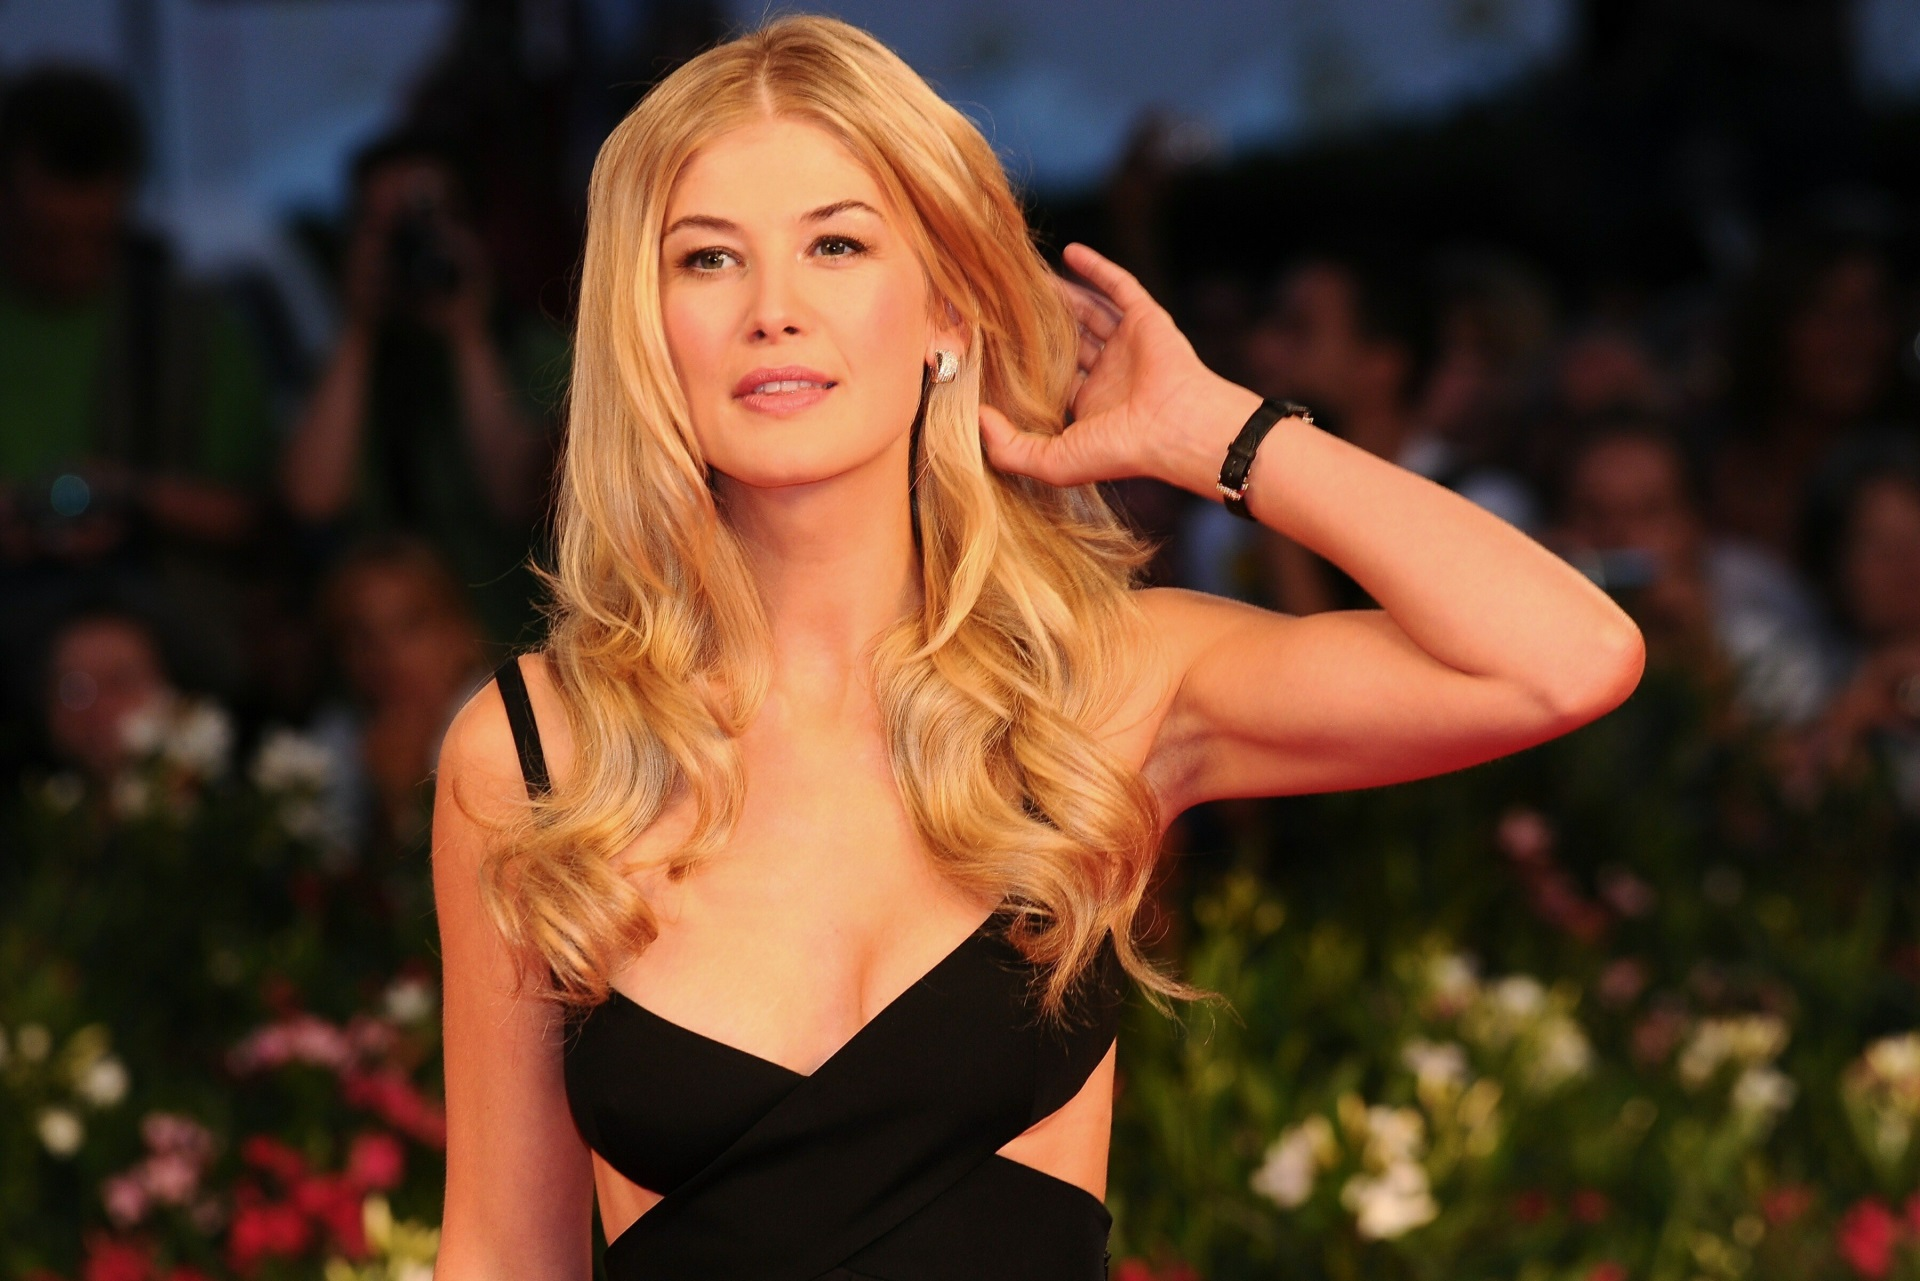 1920x1281 - Rosamund Pike Wallpapers 13